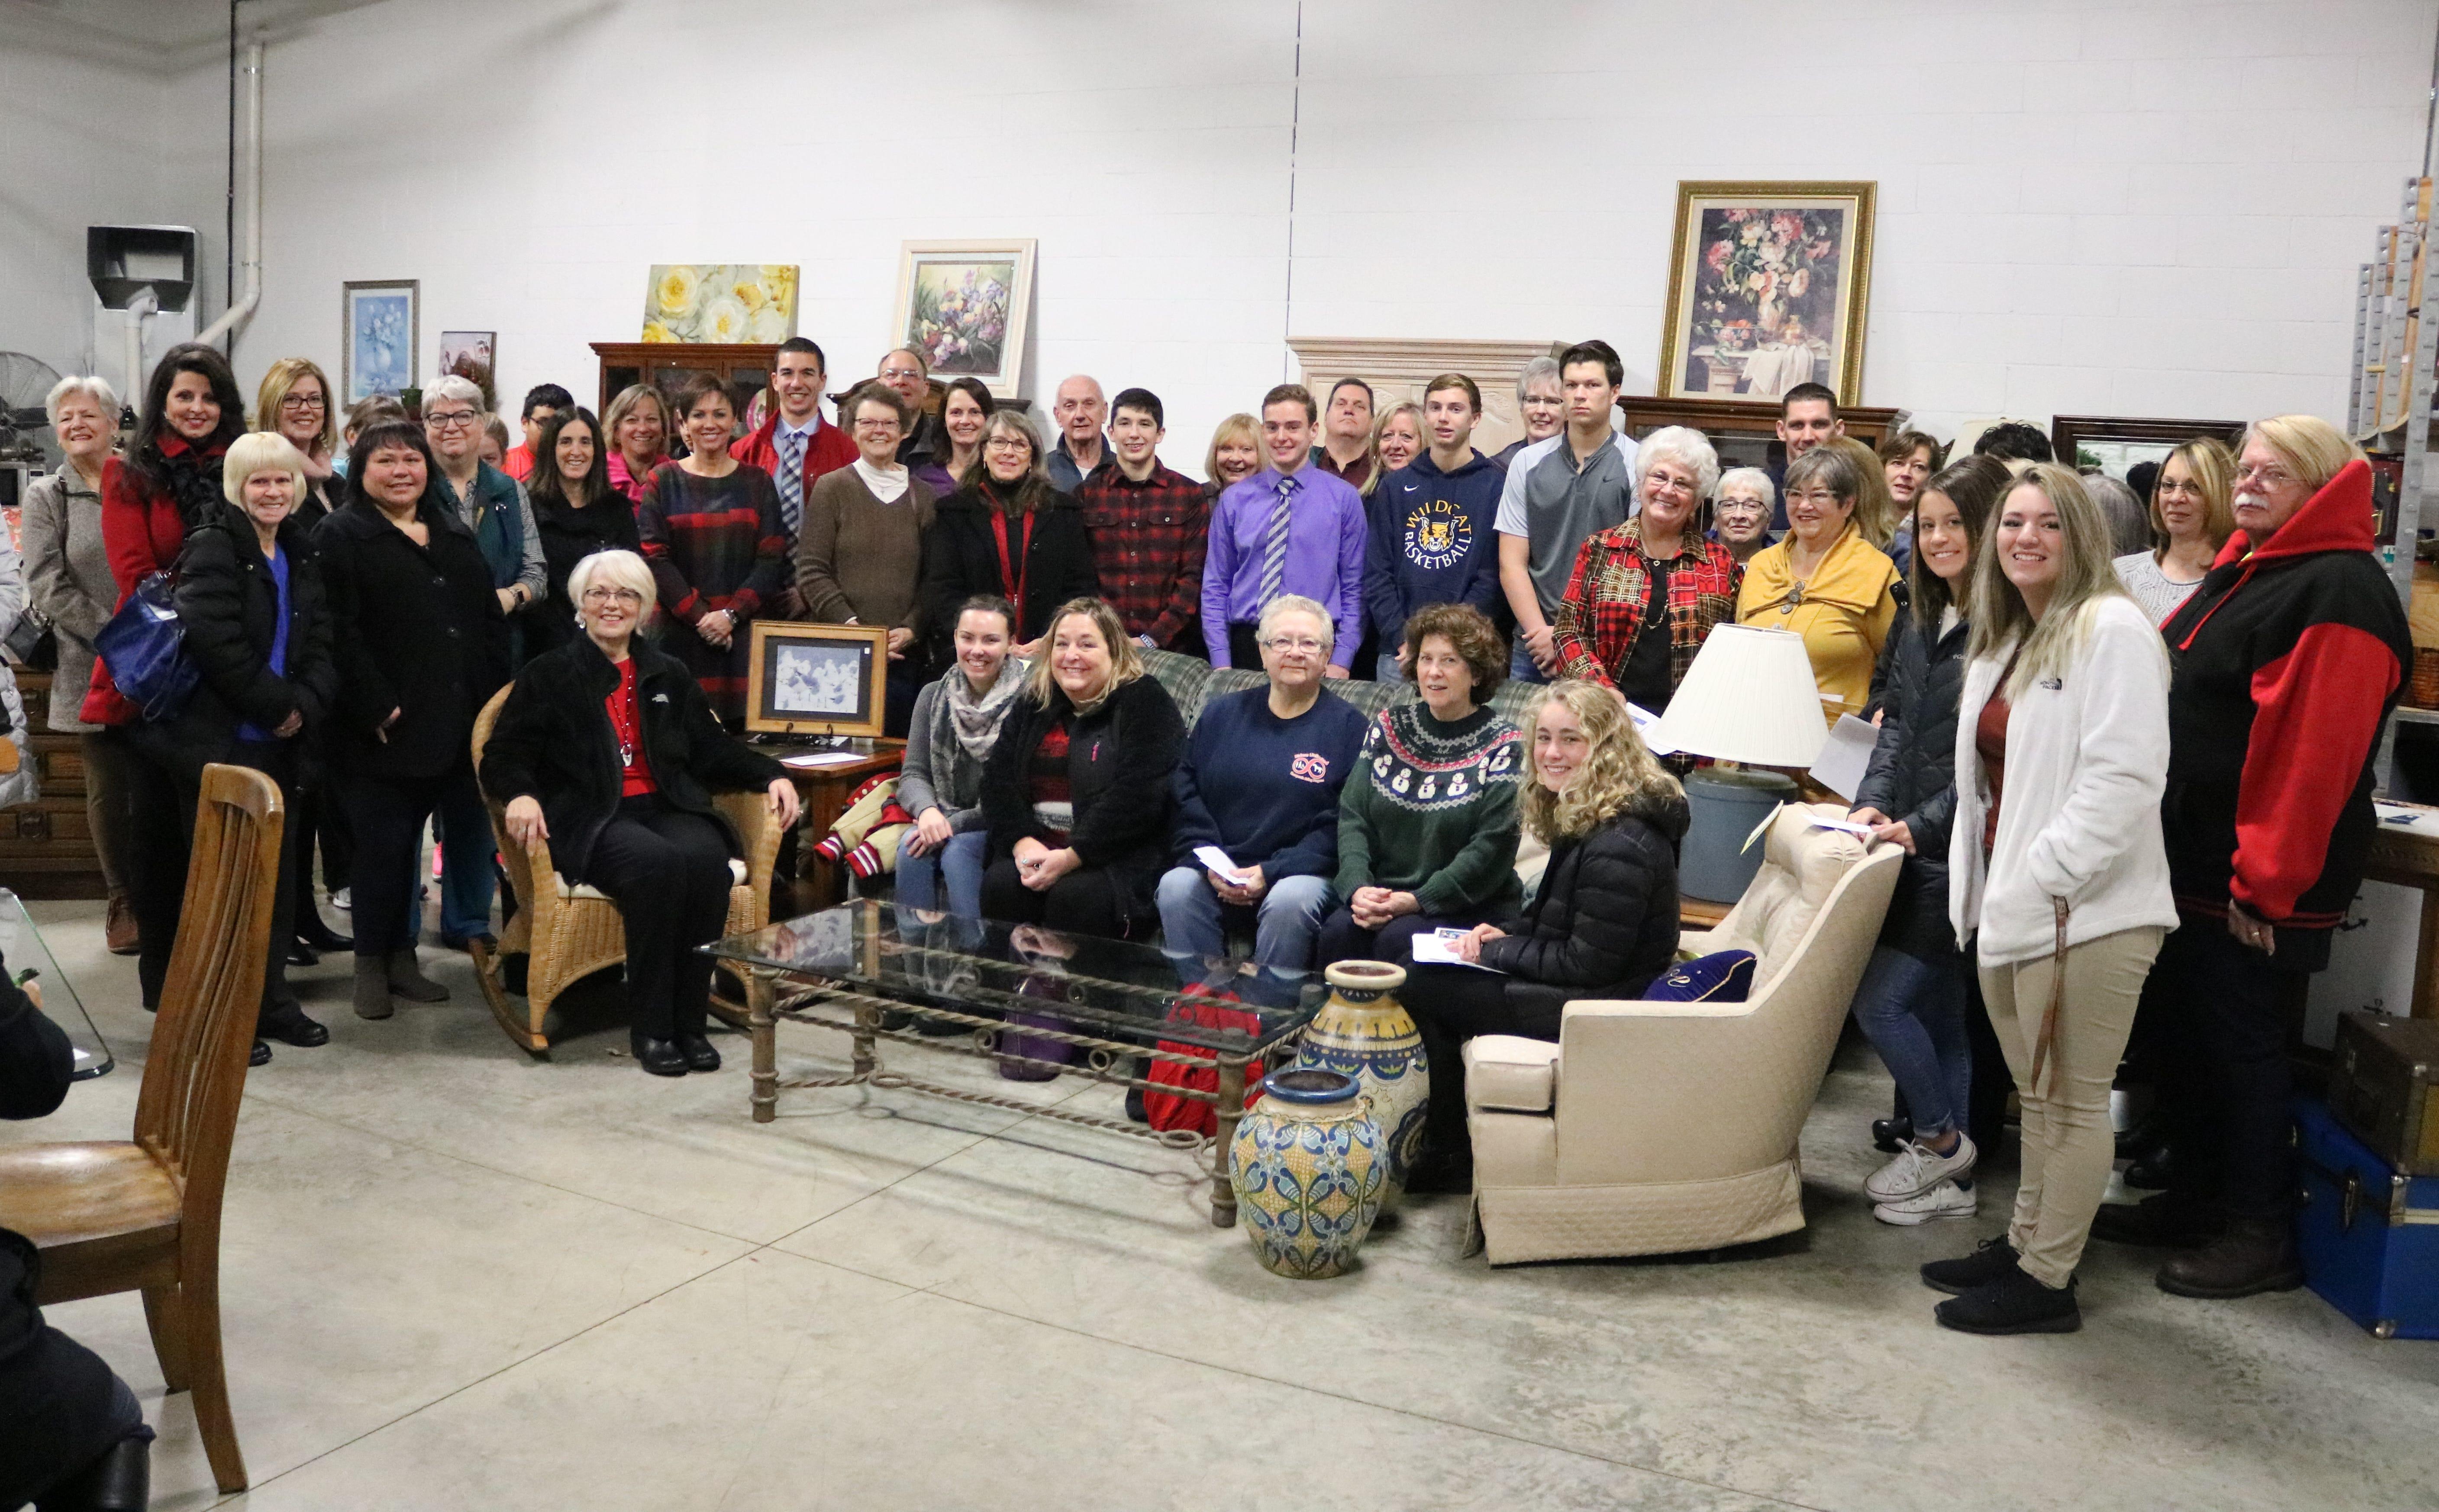 Forty-five local charities were presented with grants totaling $155,000 from the Portage Resale Center on Tuesday.